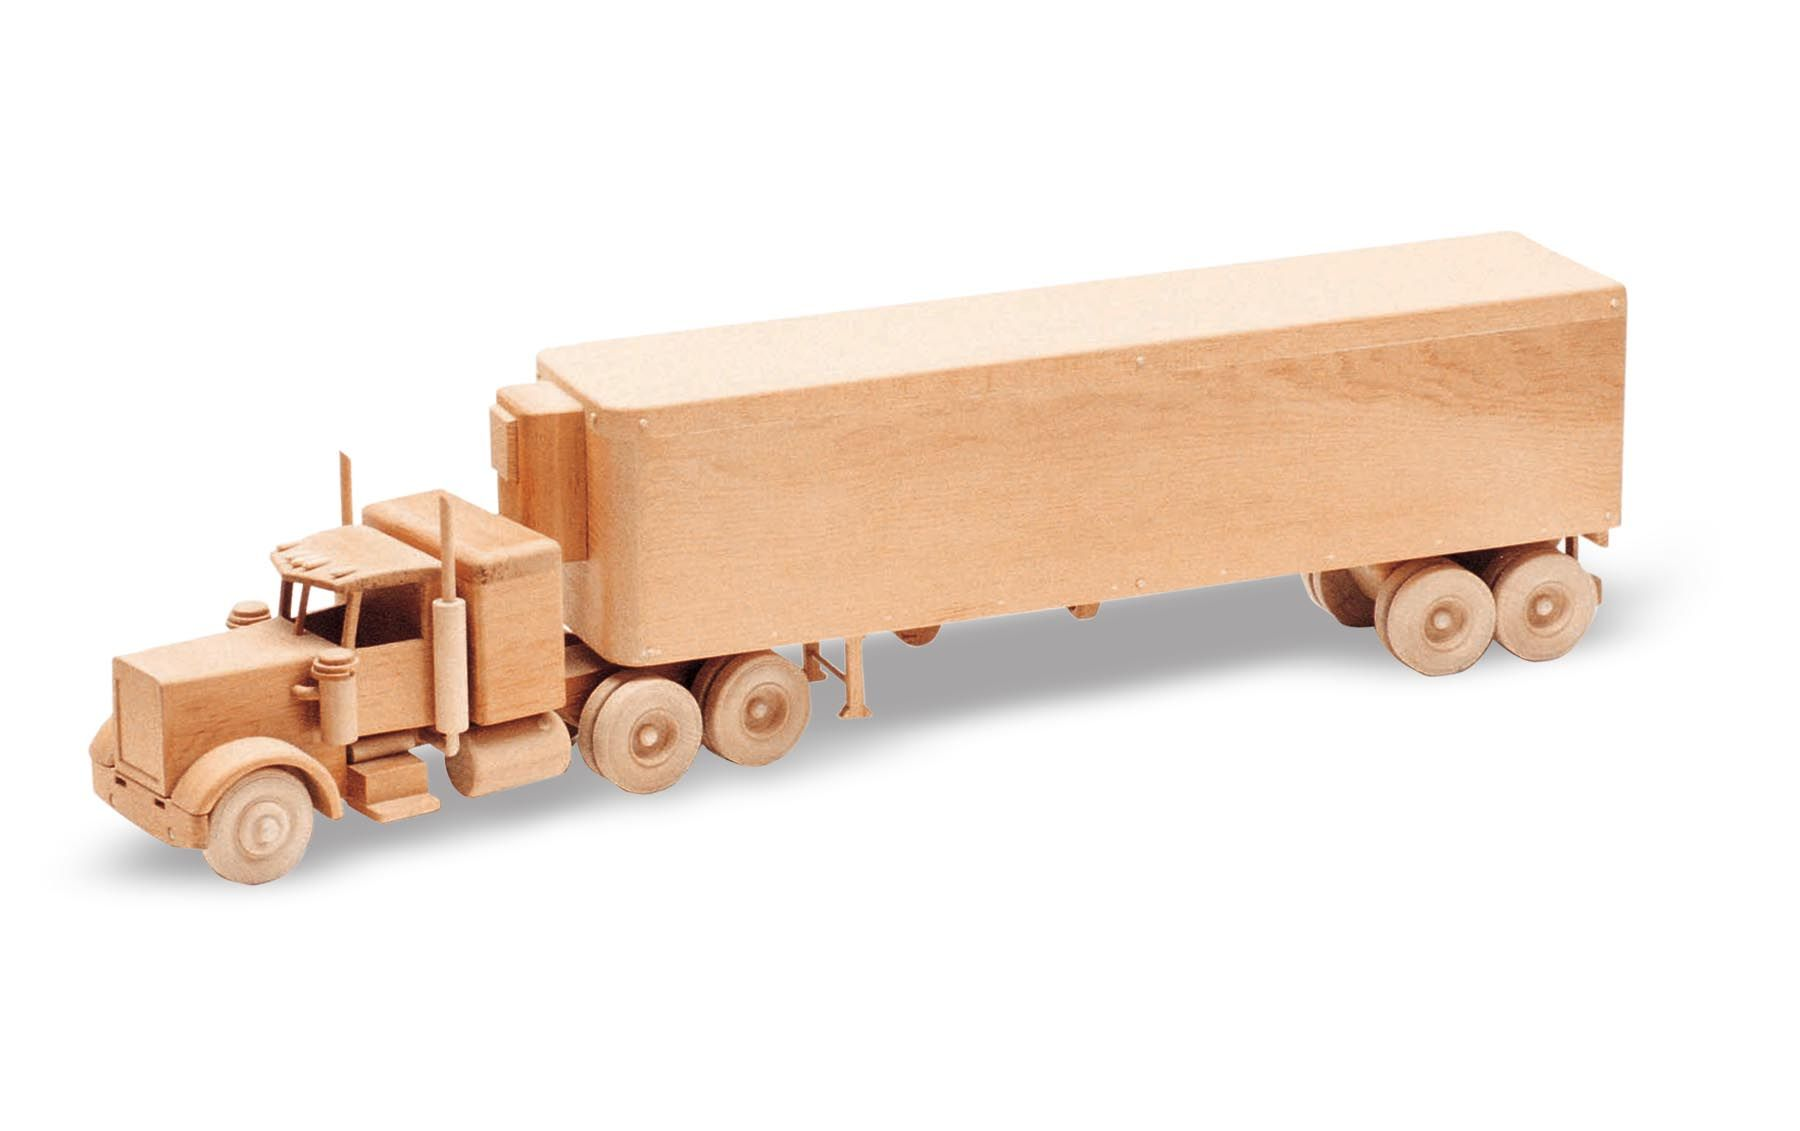 32 The Big Rig Wooden Toy Plans Woodworking Wooden